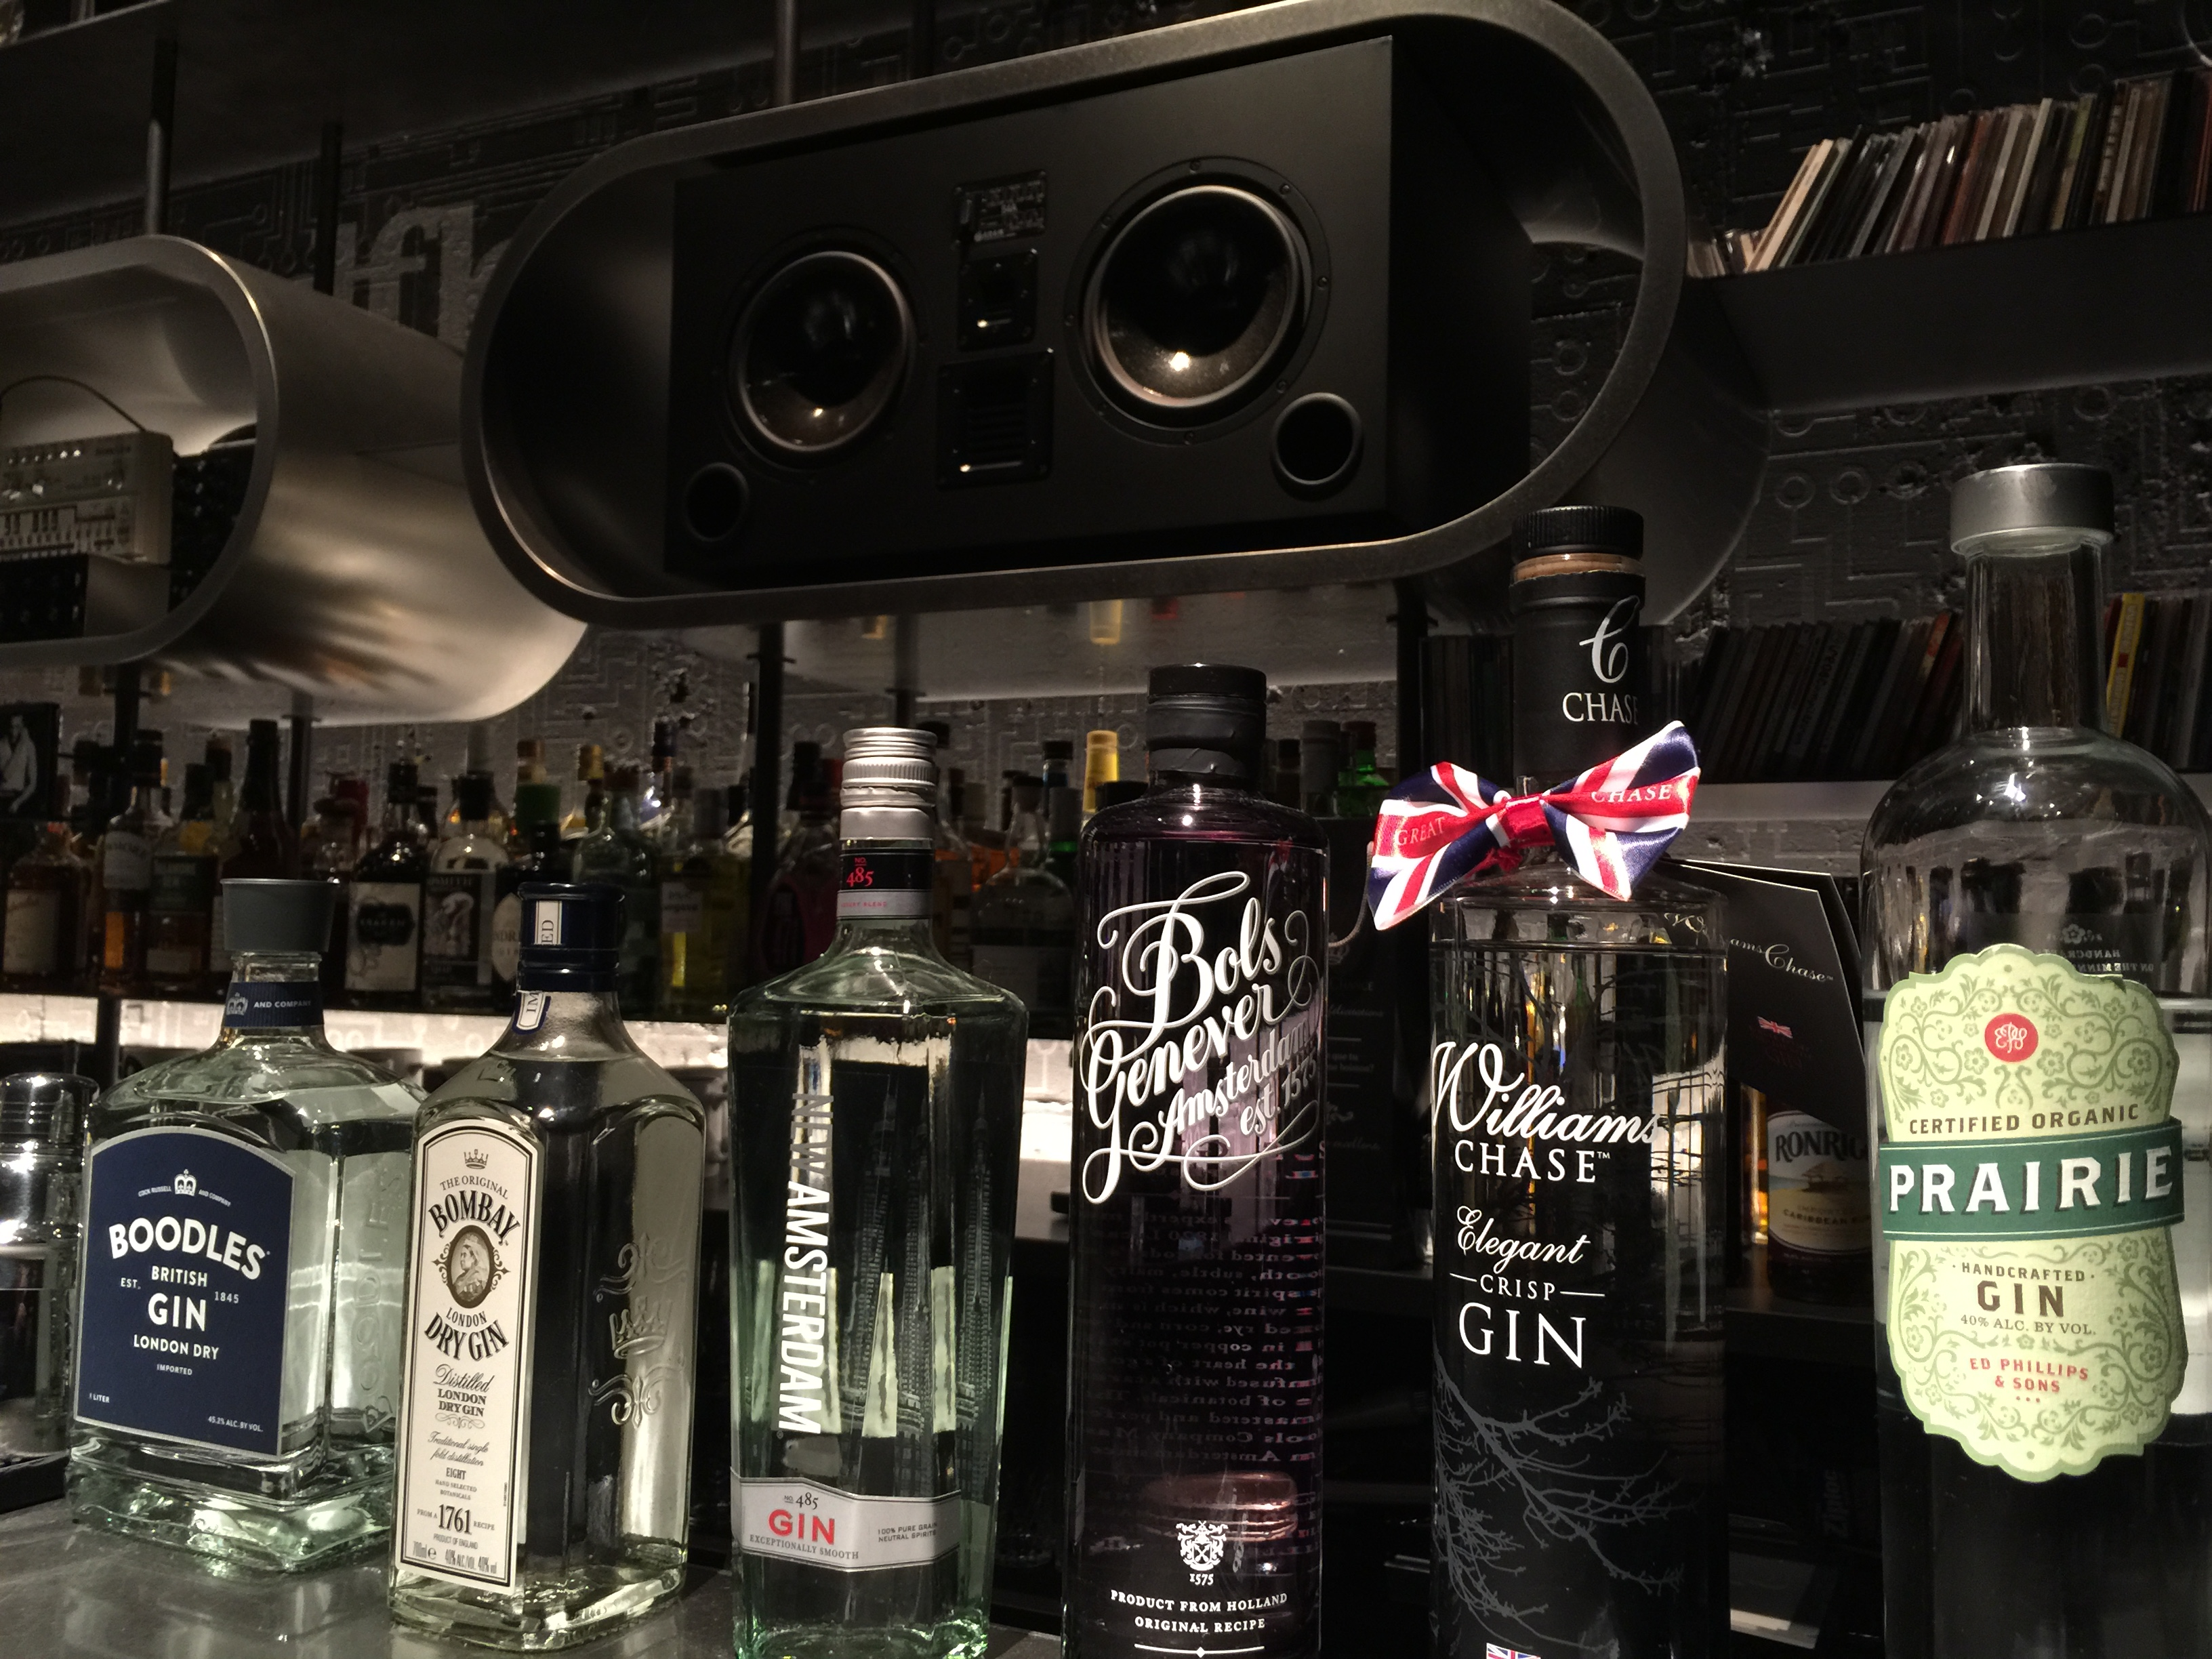 55kinds of Gin